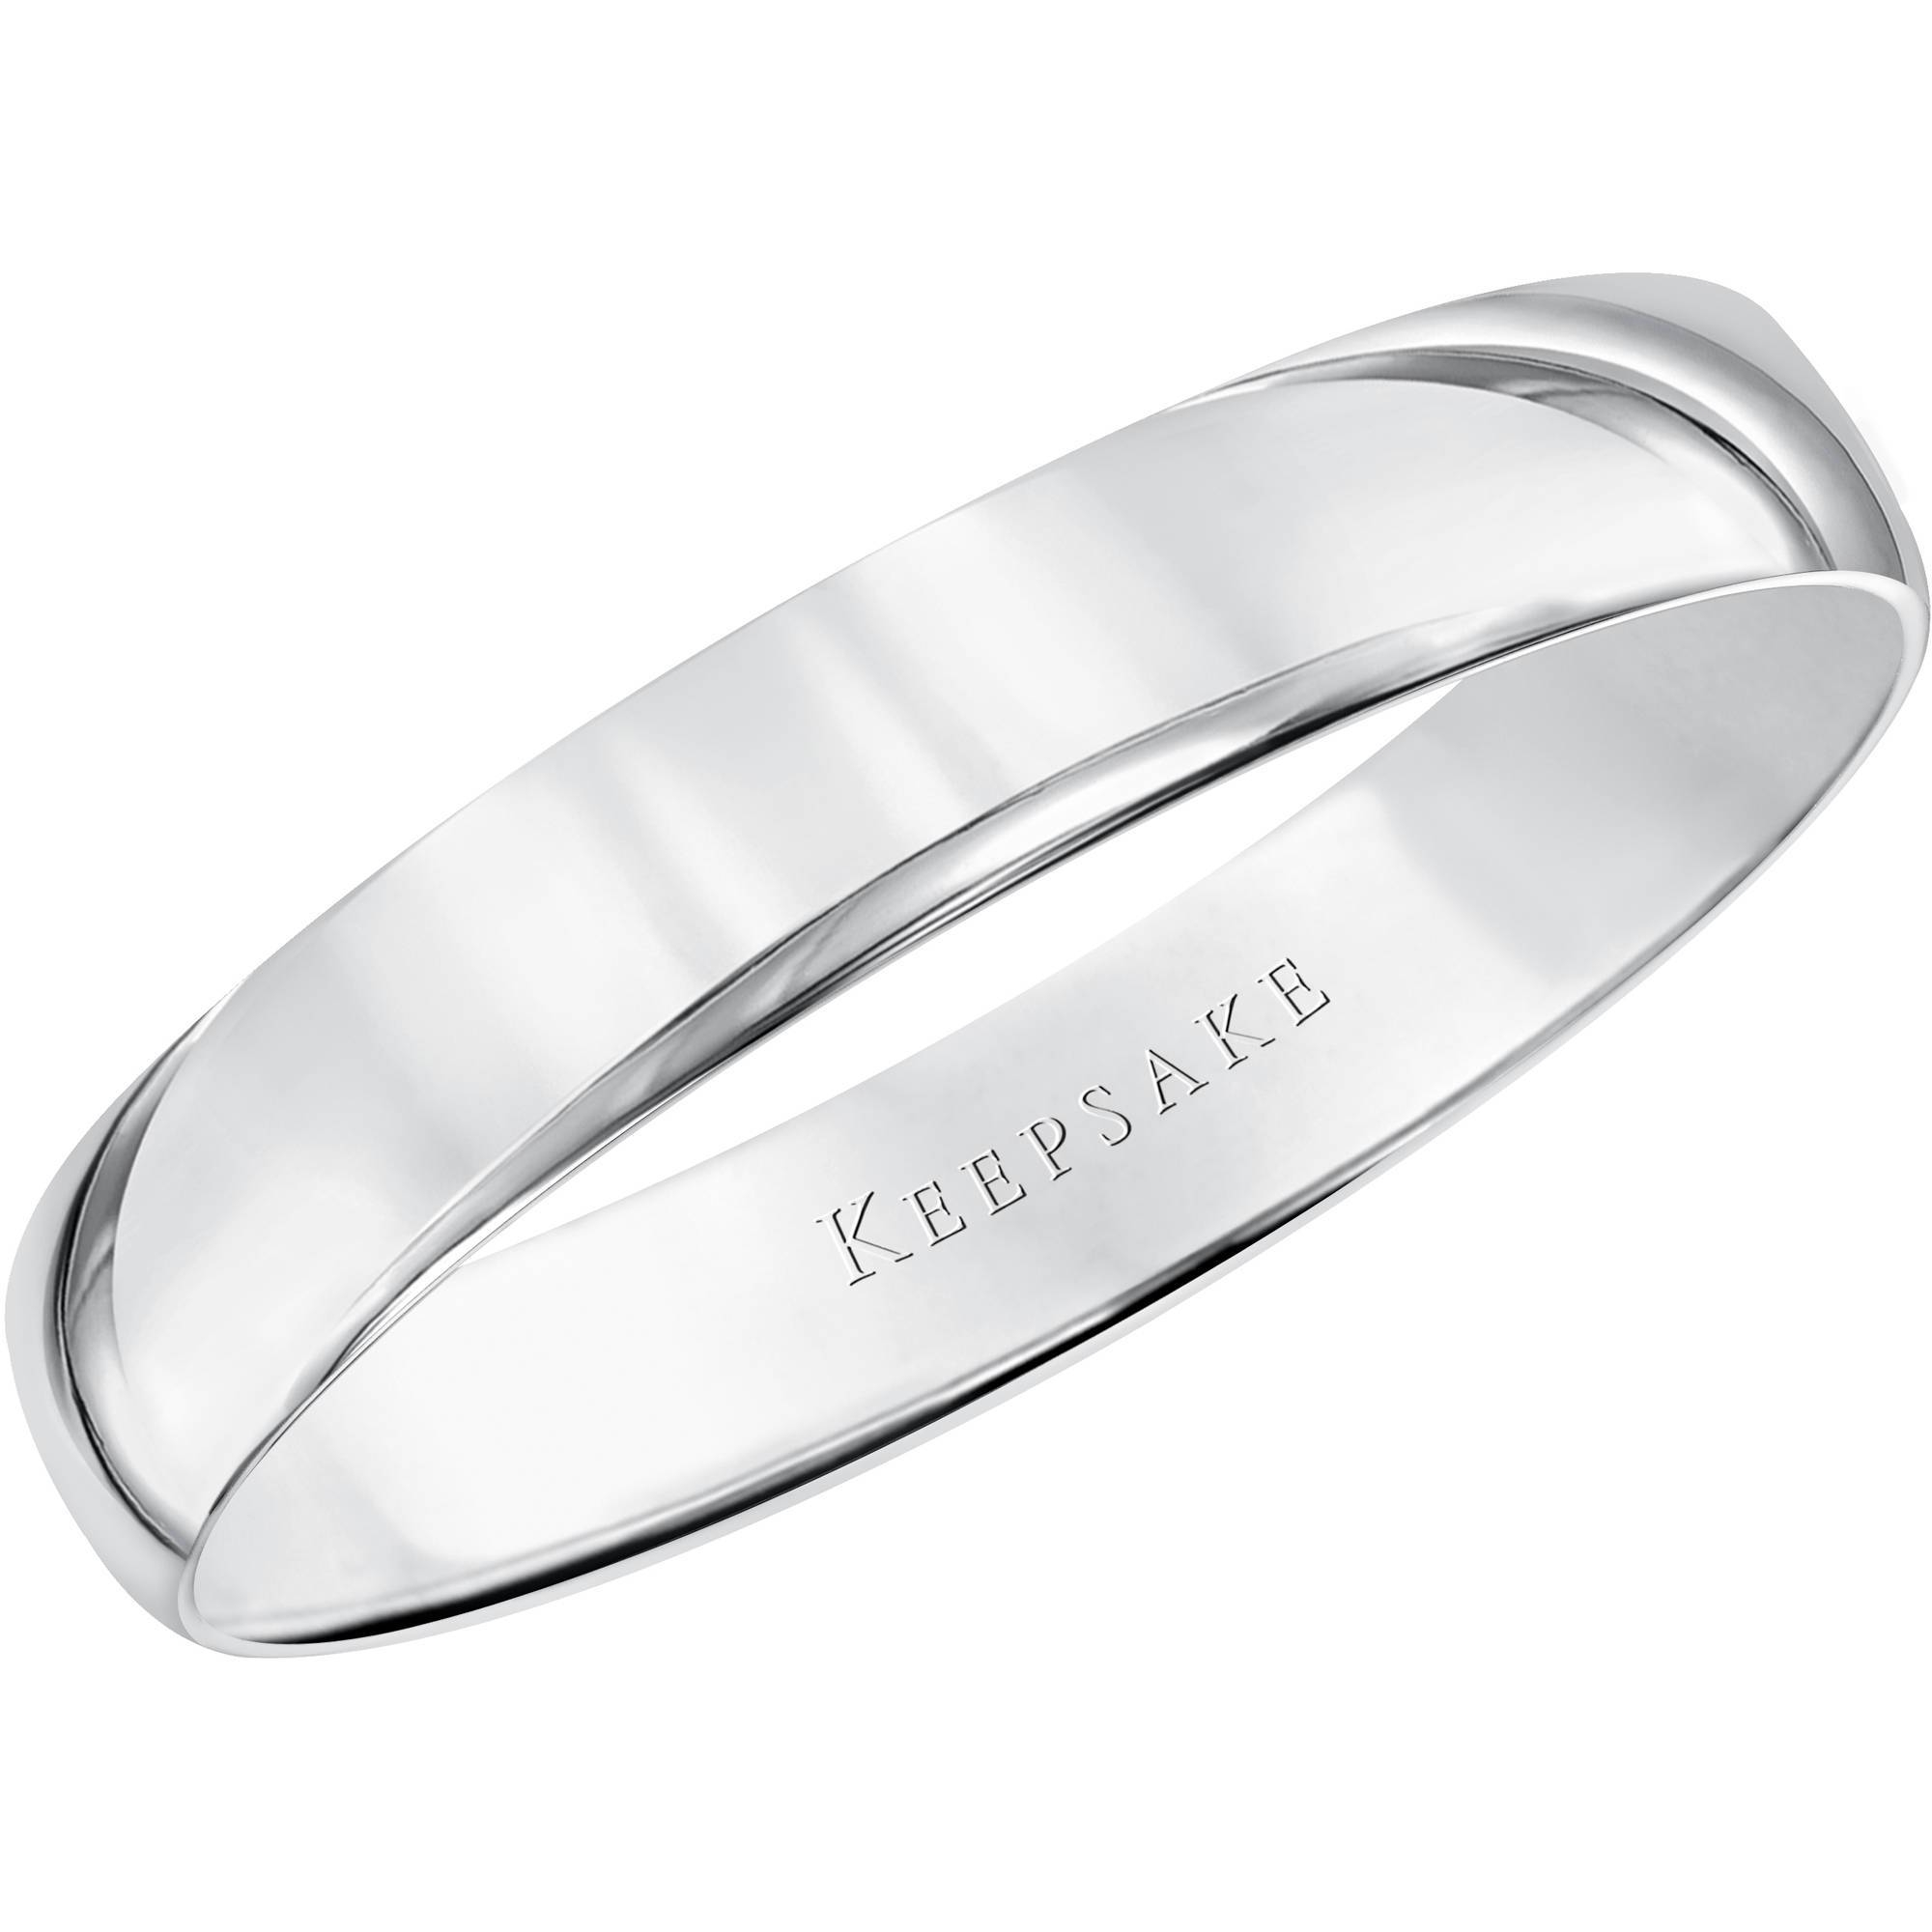 Keepsake 10kt White Gold Wedding Band With High Polish Finish, 5mm Within Walmart White Gold Wedding Bands (View 9 of 15)